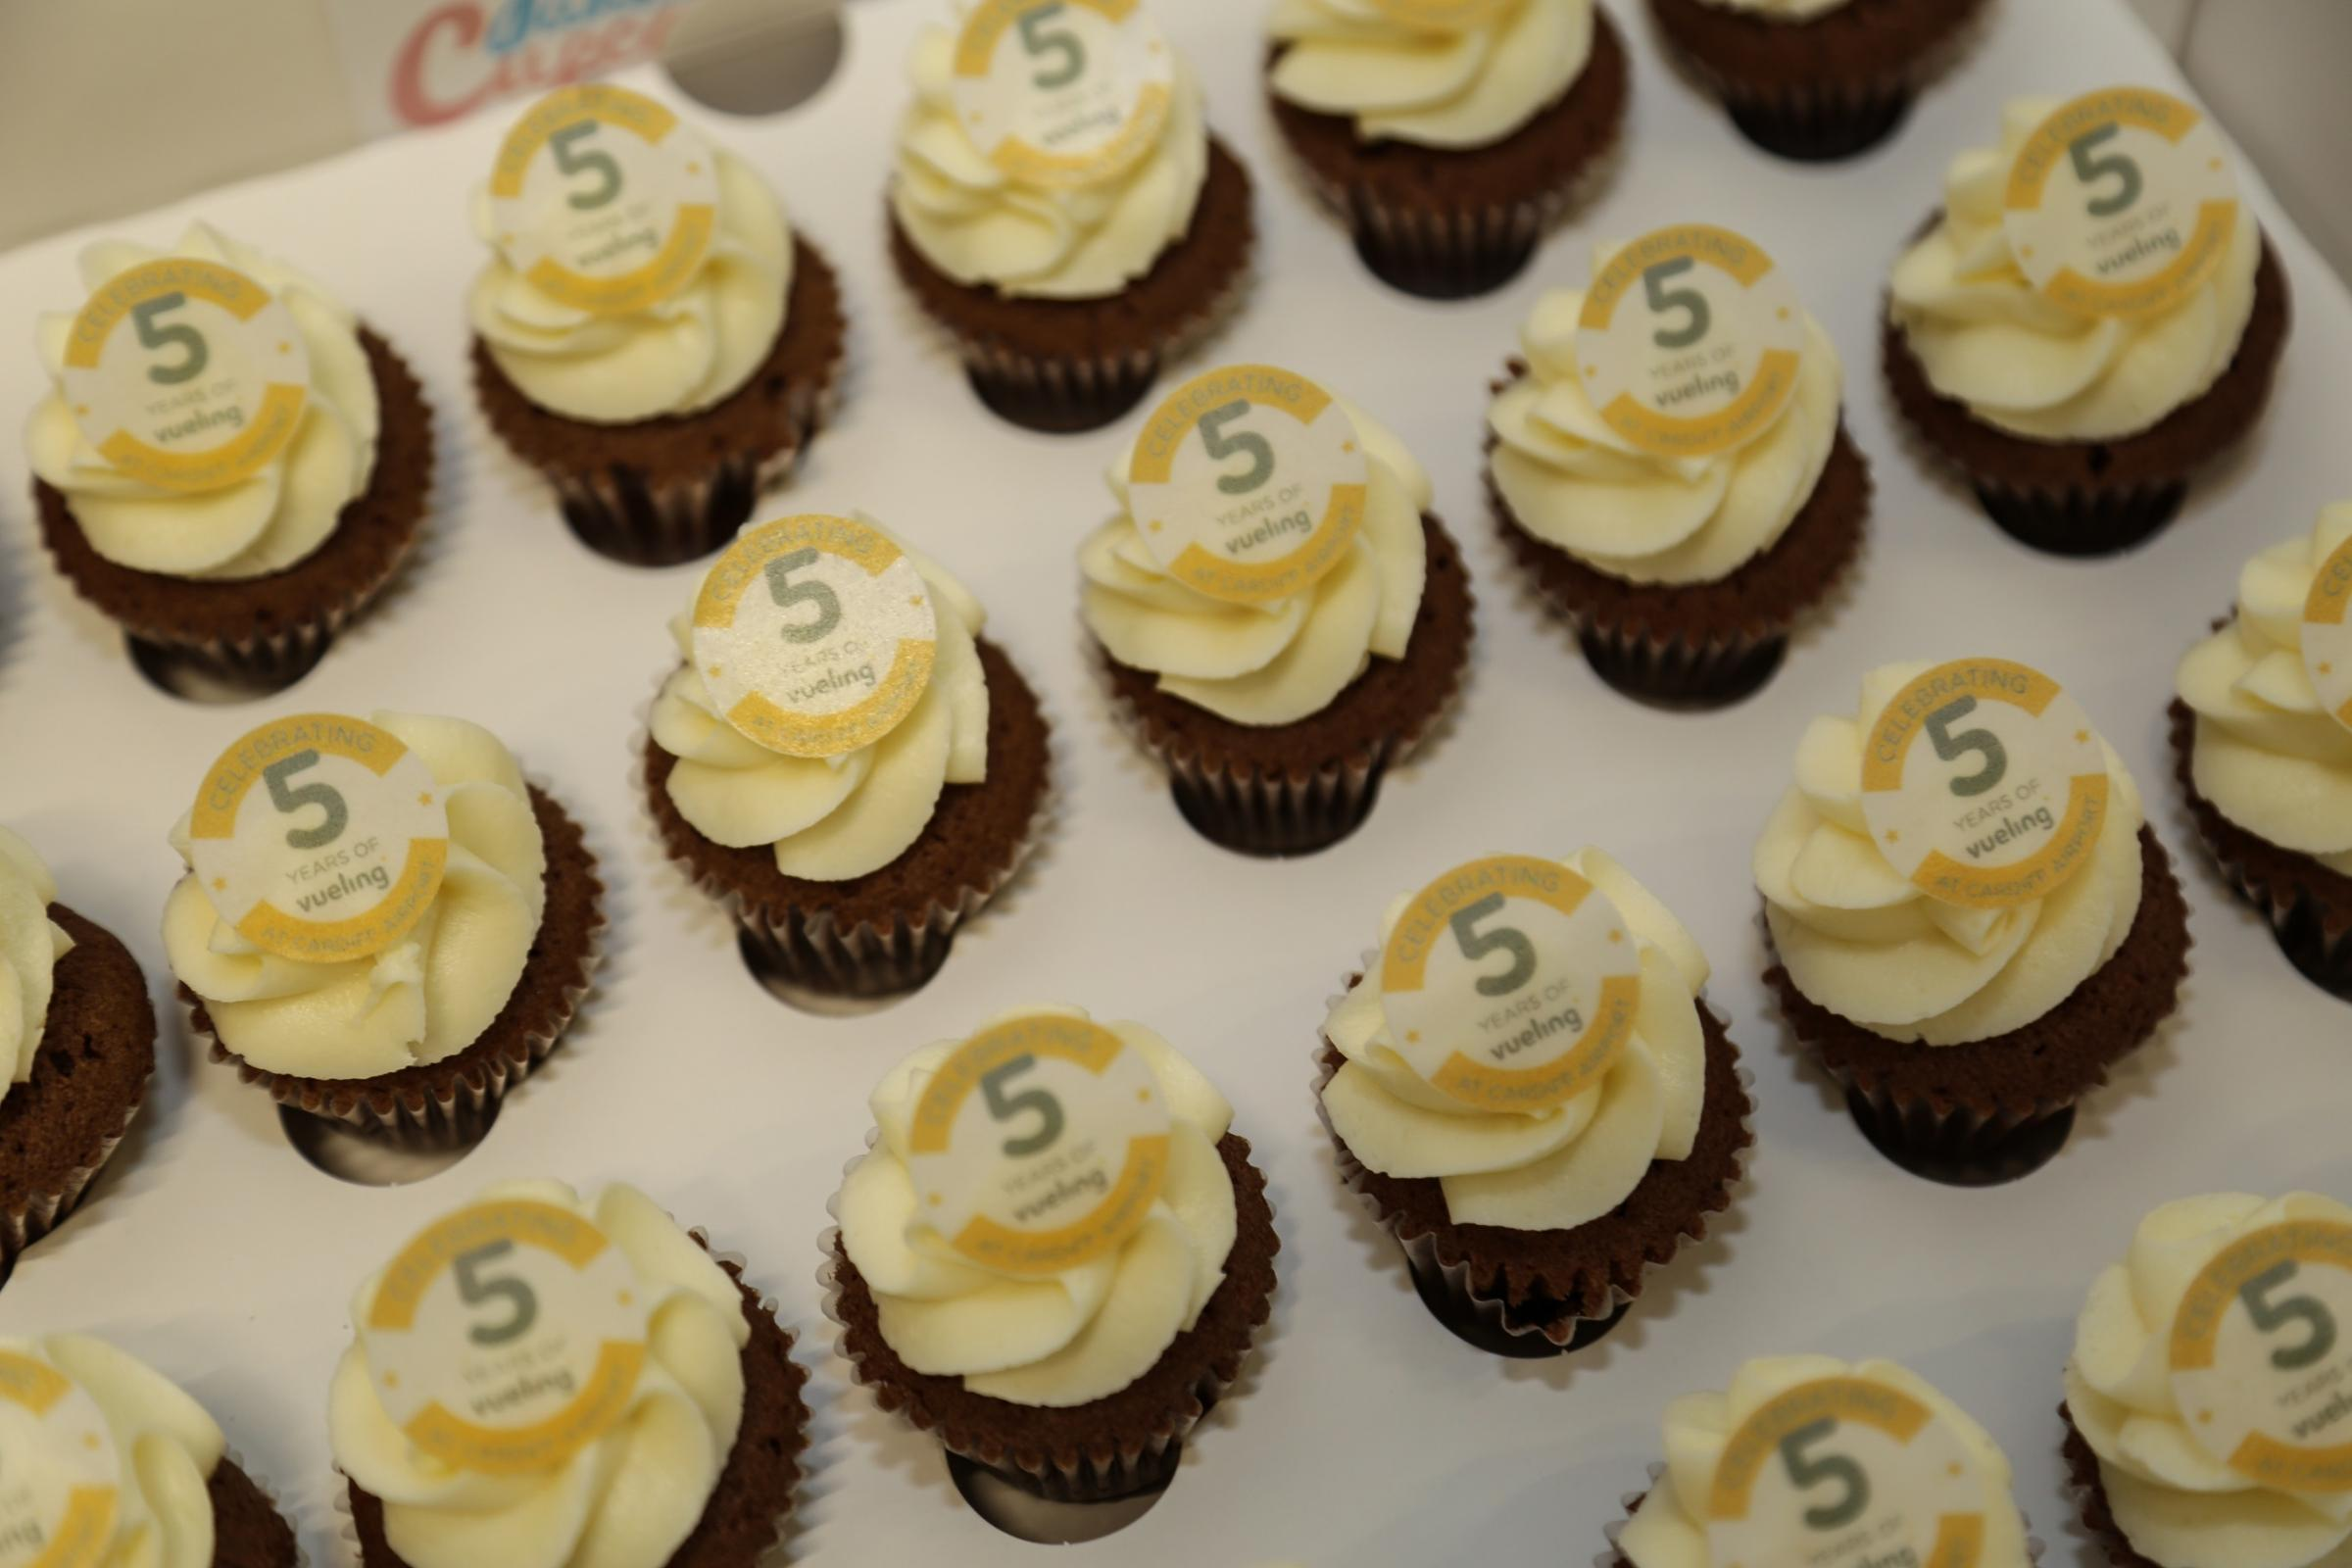 Vueling cup cakes